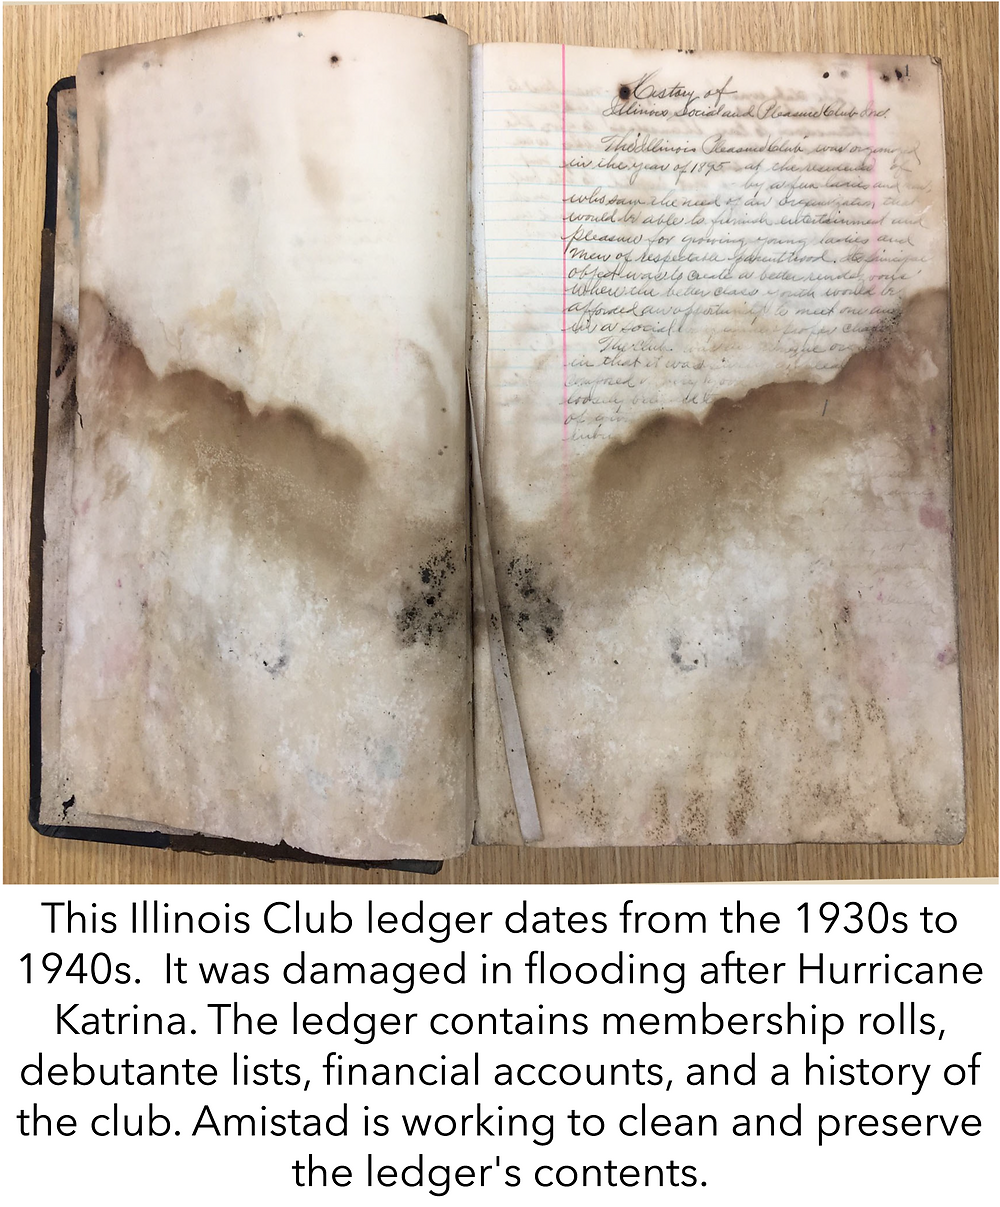 This Illinois Club ledger dates from the 1930s to 1940s.  It was damaged in flooding after Hurricane Katrina. The ledger contains membership rolls, debutante lists, financial accounts, and a history of the club. Amistad is working to clean and preserve the ledger's contents.